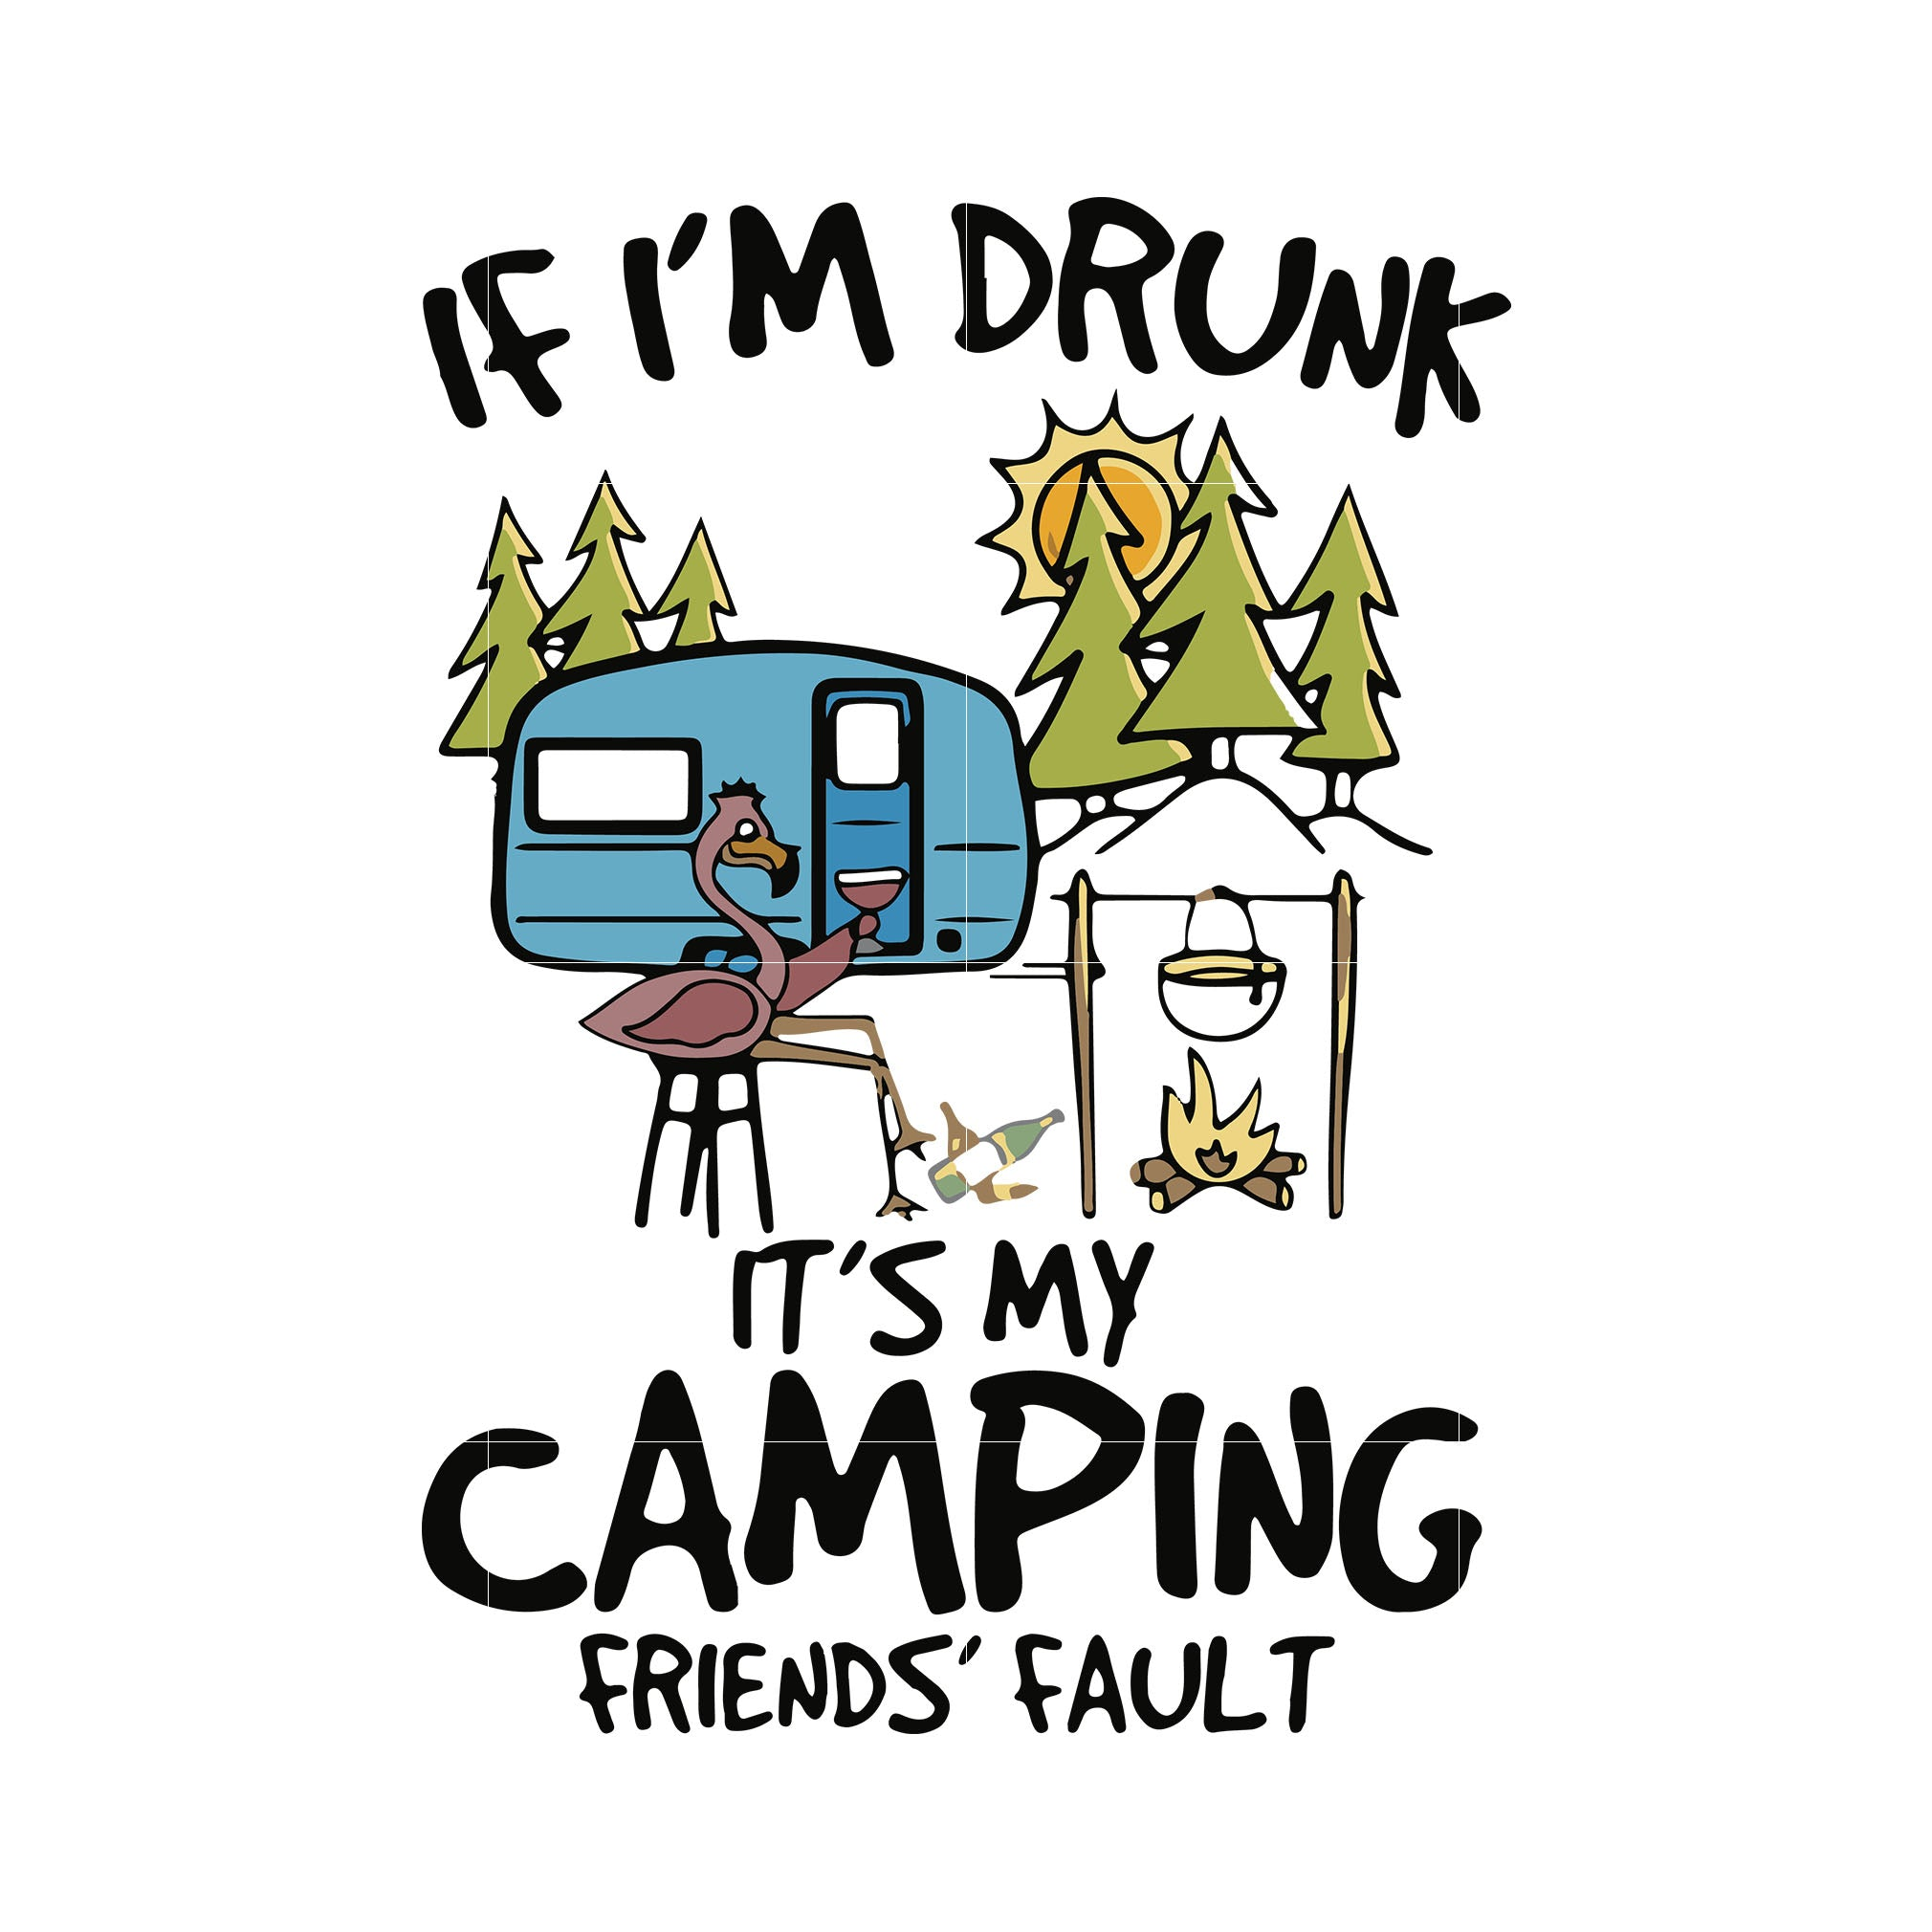 If i'm drunk it's my camping friends' fault svg,dxf,eps,png digital file